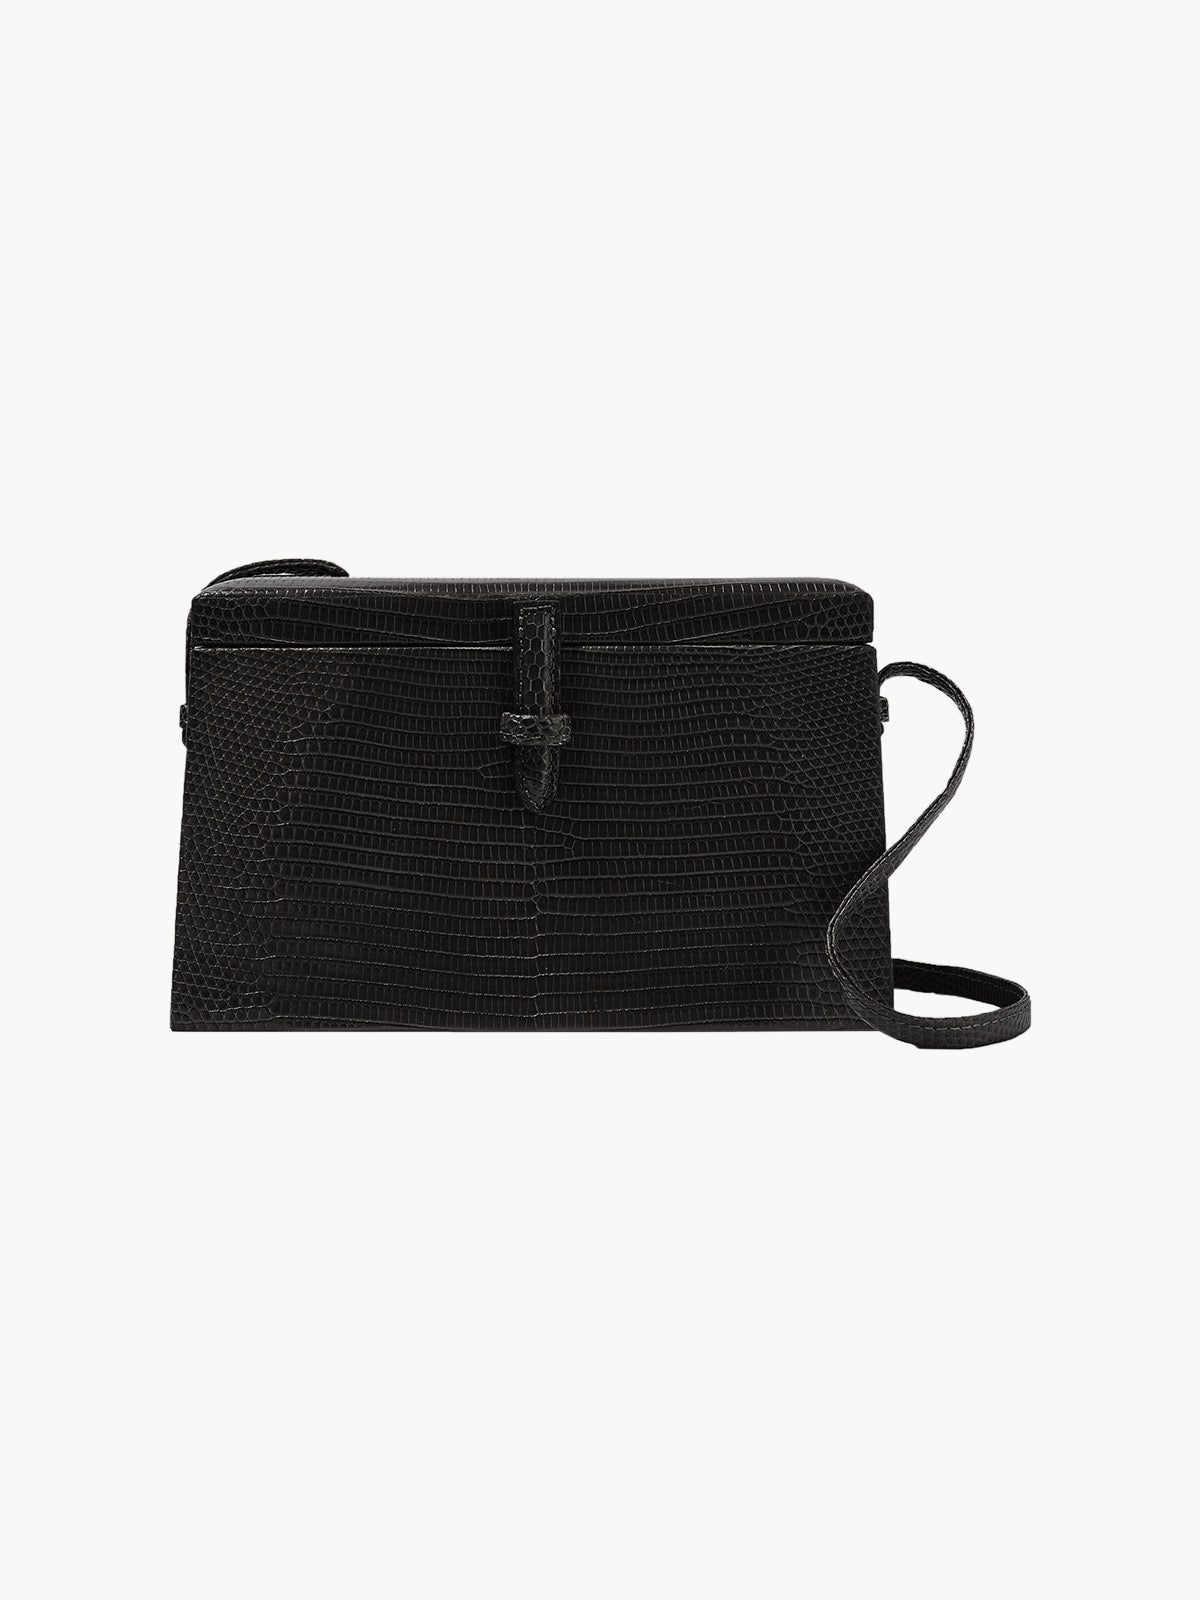 Square Trunk Bag | Black Lizard